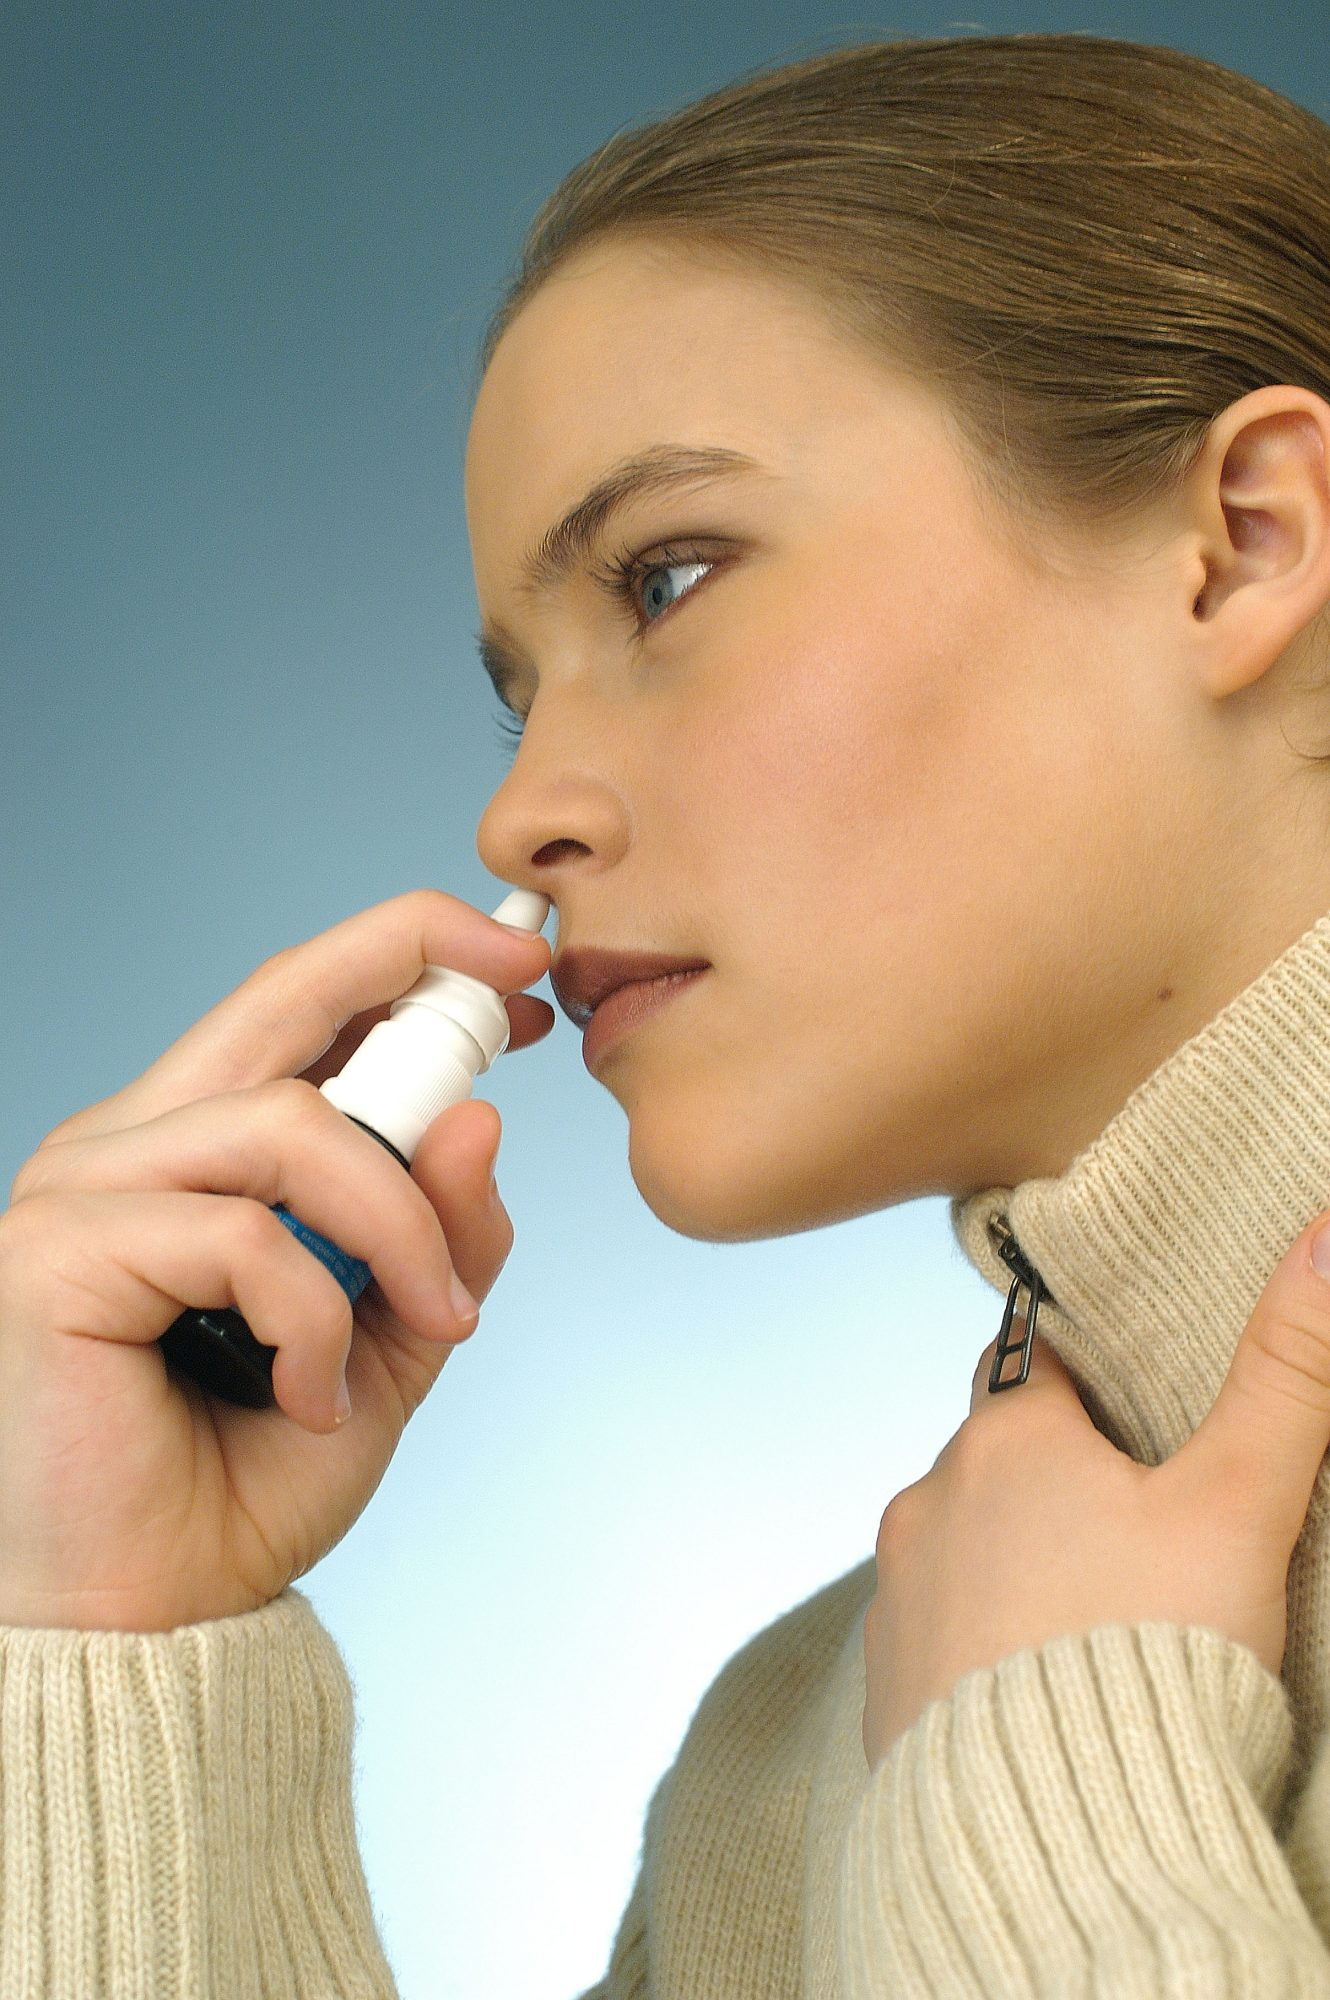 How To Get Rid Of A Stuffy Nose Fast Health